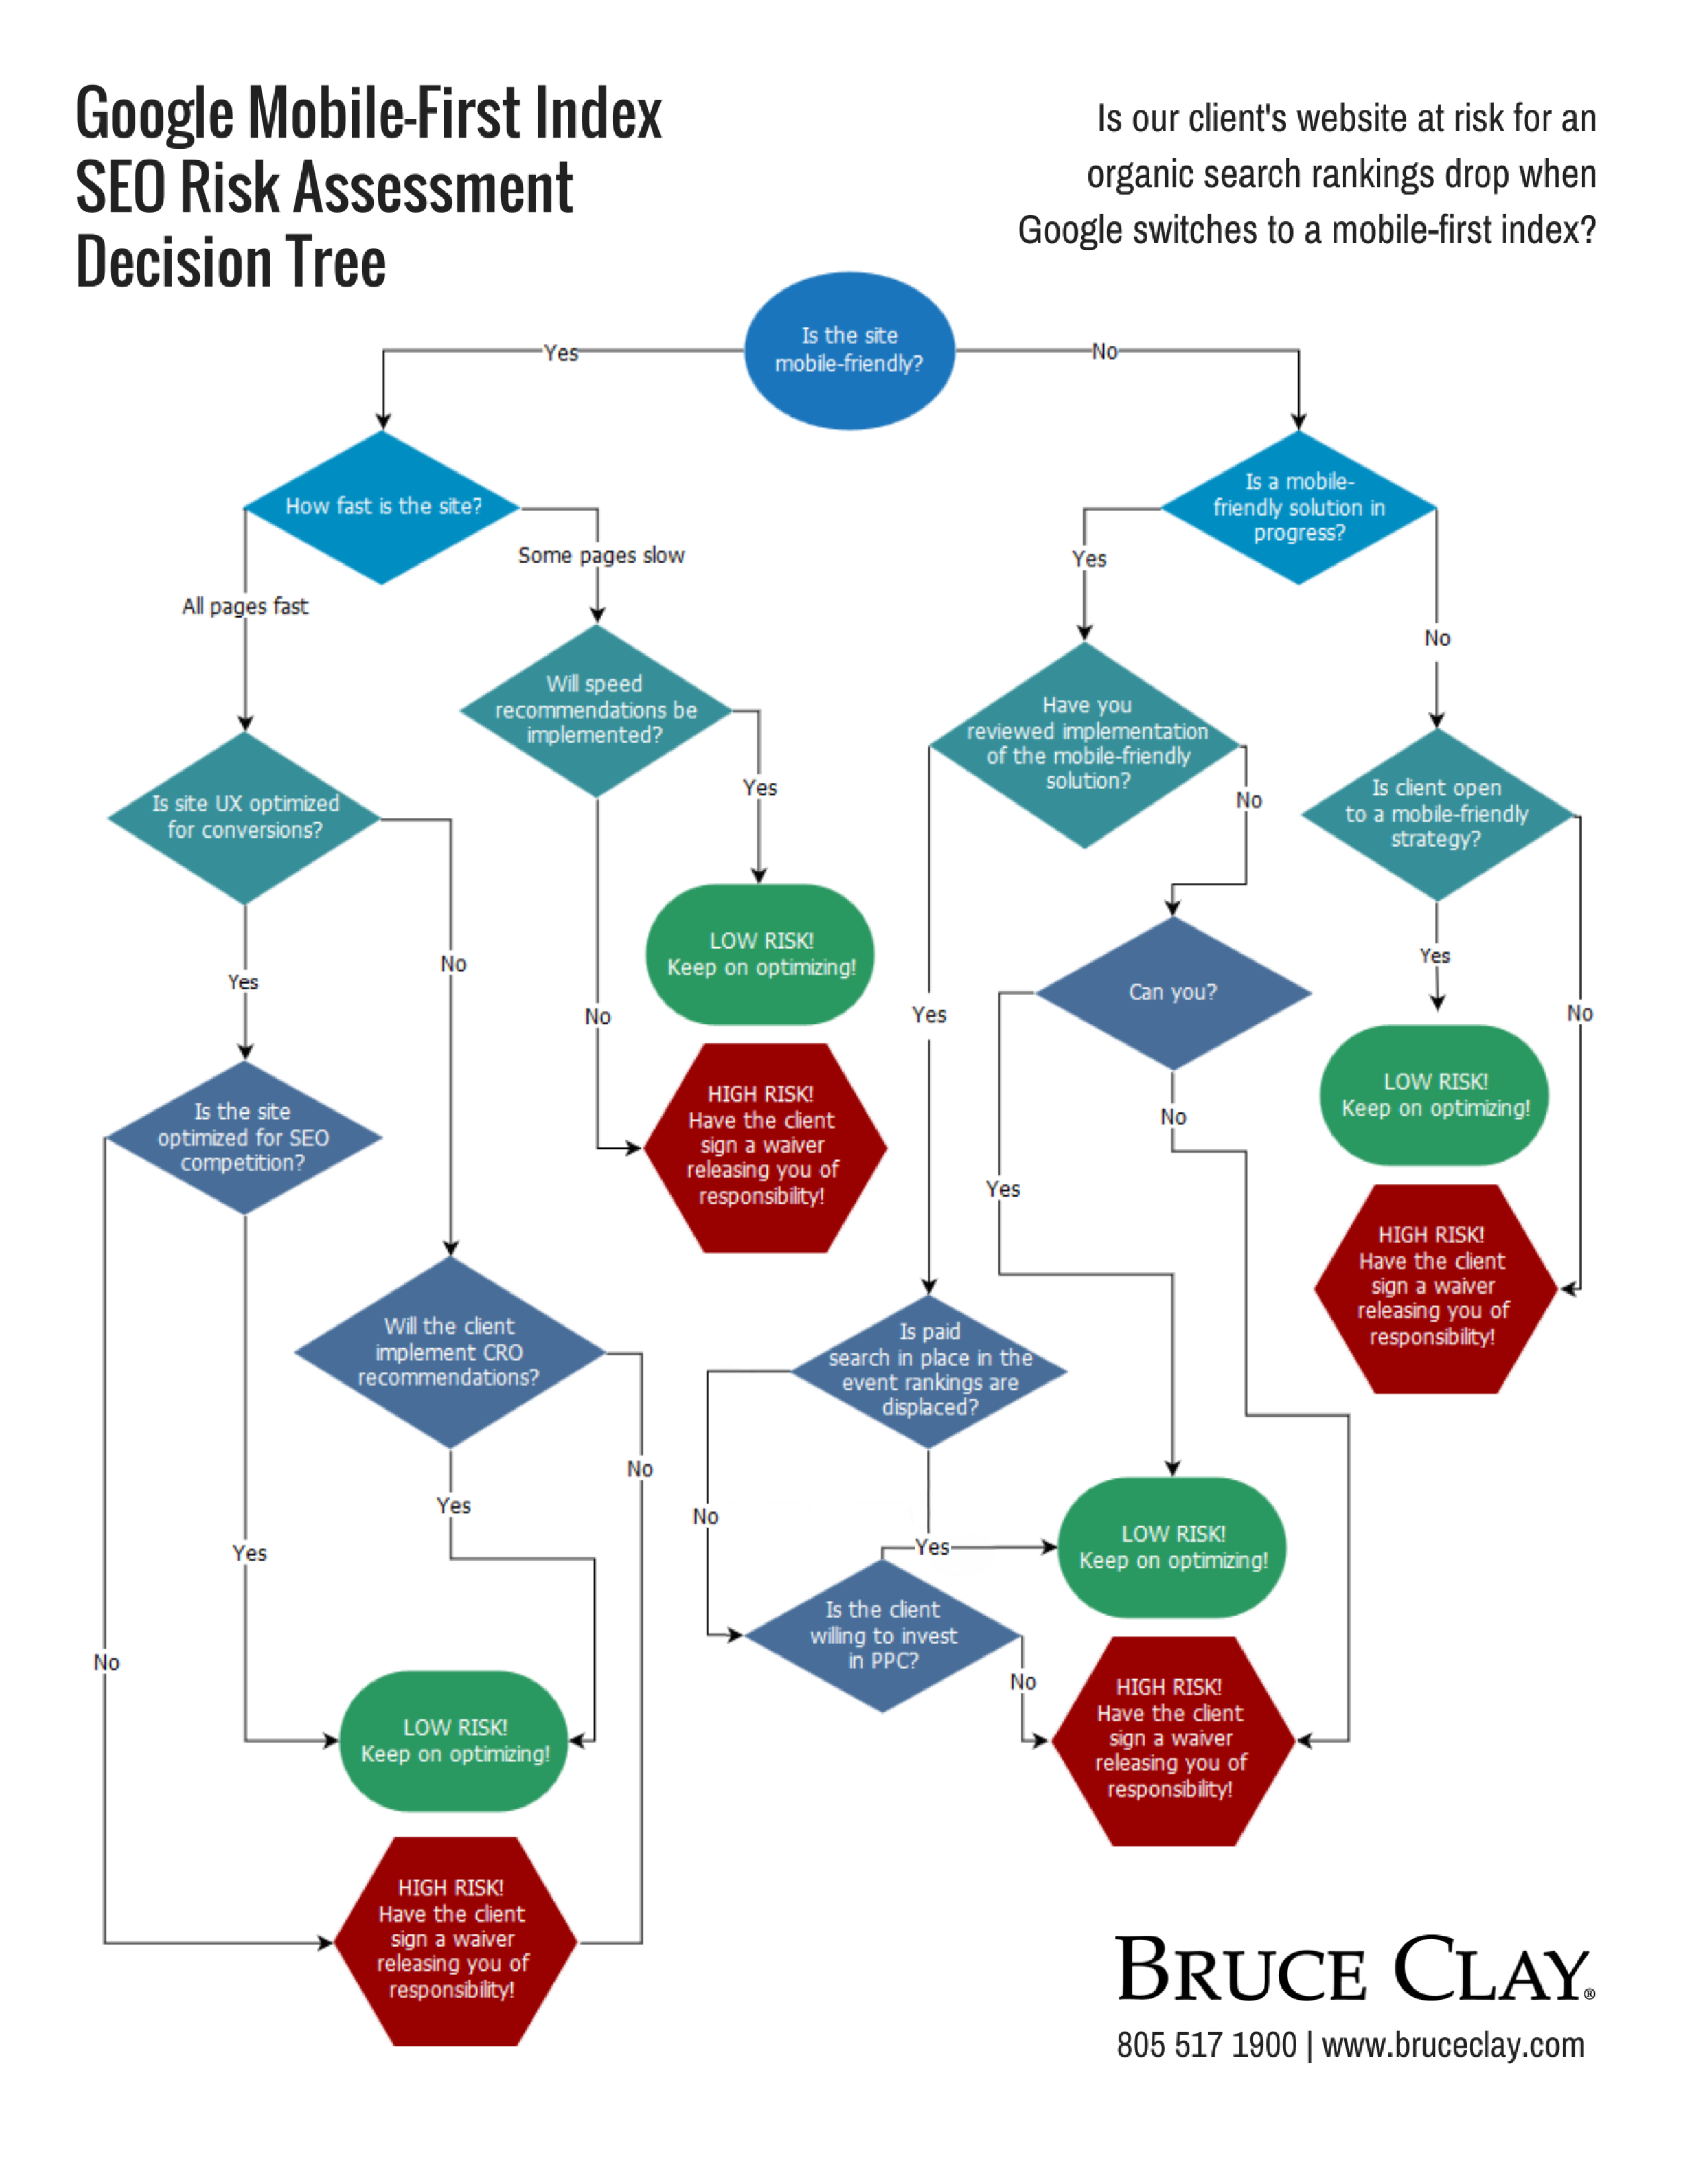 Flowchart how to know if you re at risk when google switches to a